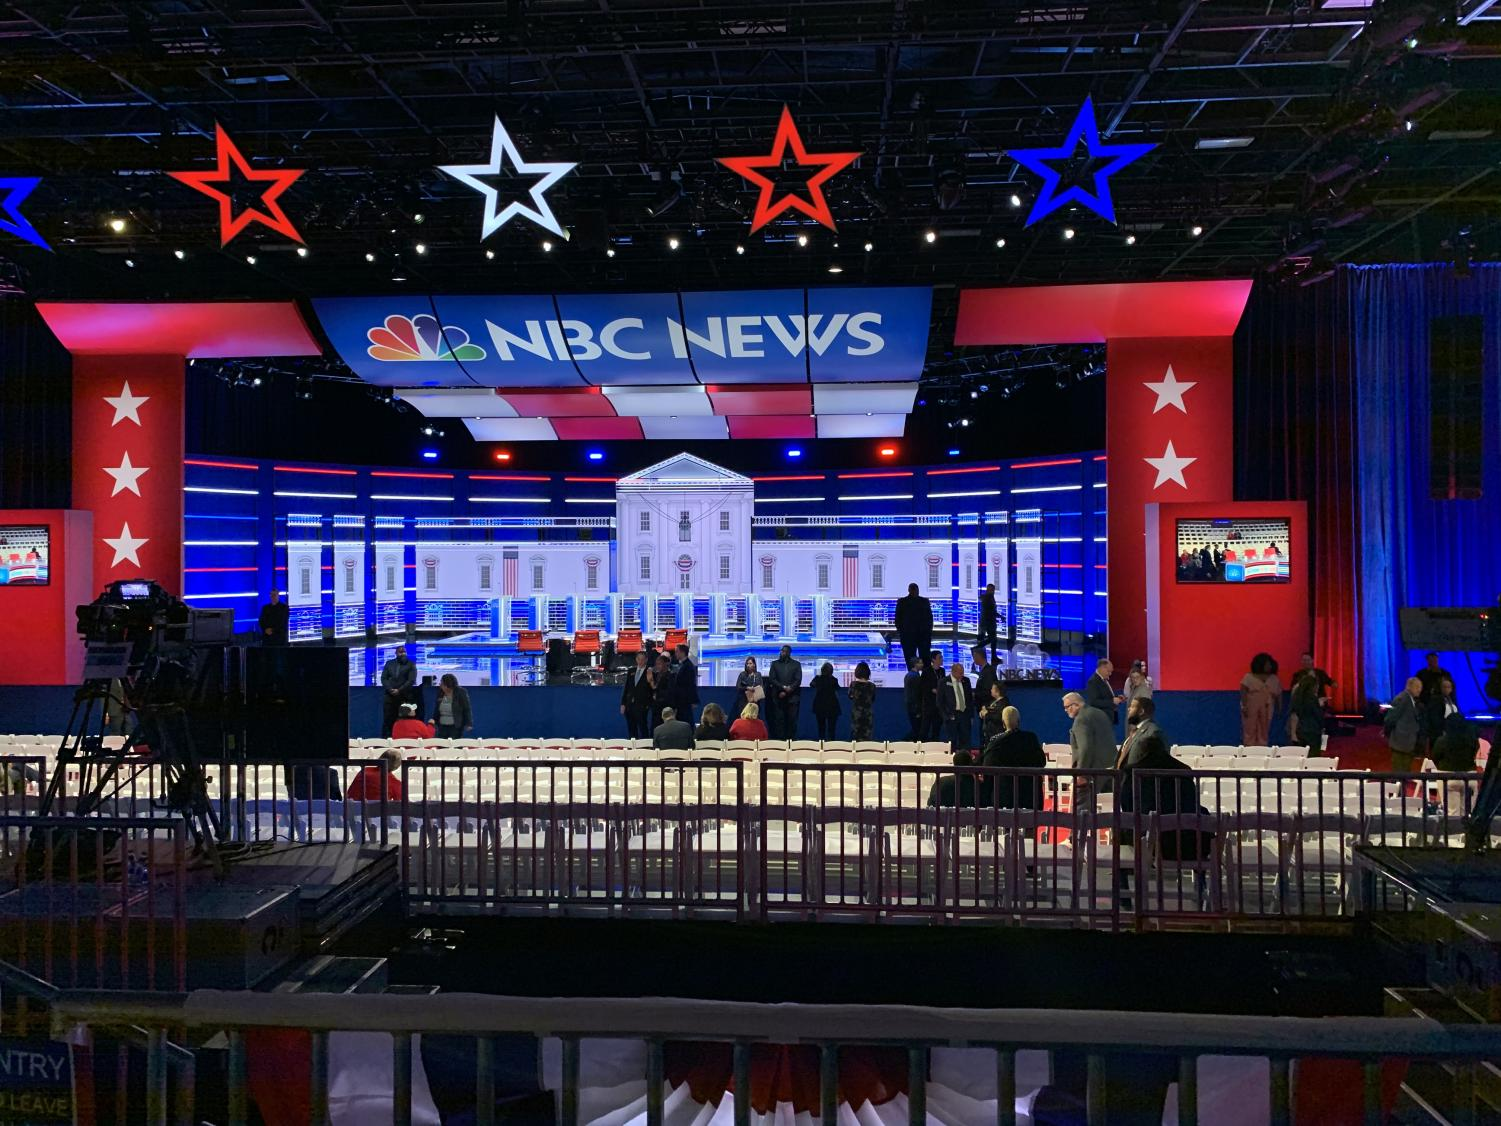 Preparations take place for the Fifth Democratic Debate at Tyler Perry Studios in Atlanta. This debate highlighted contrasts among candidates but also offered the most even playing field since the primary began.